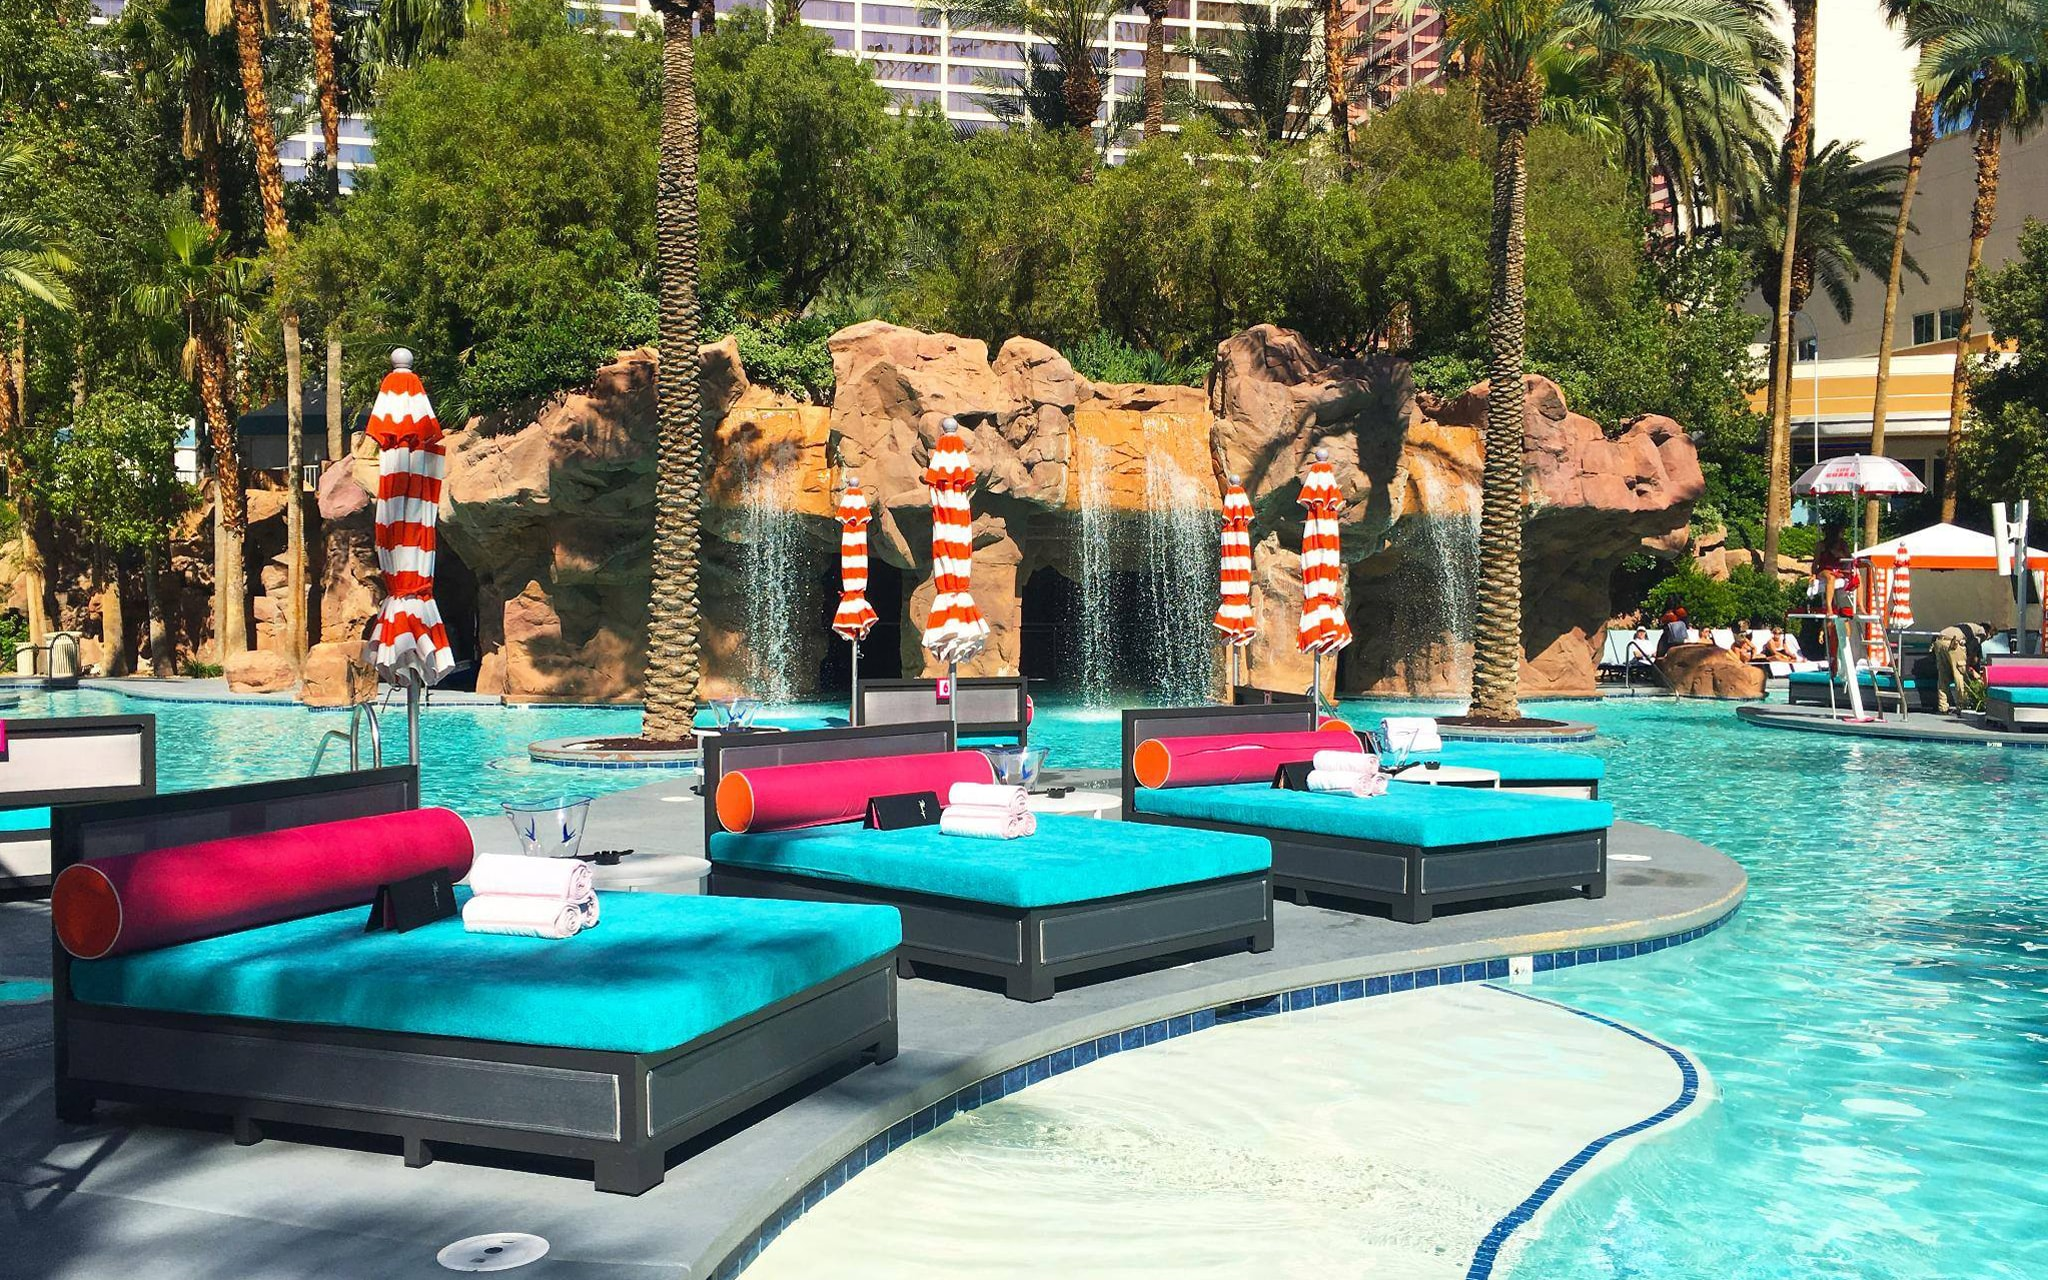 Flamingo Las Vegas Kid Pool Flamingo Las Vegas Hotel Review Nevada United States